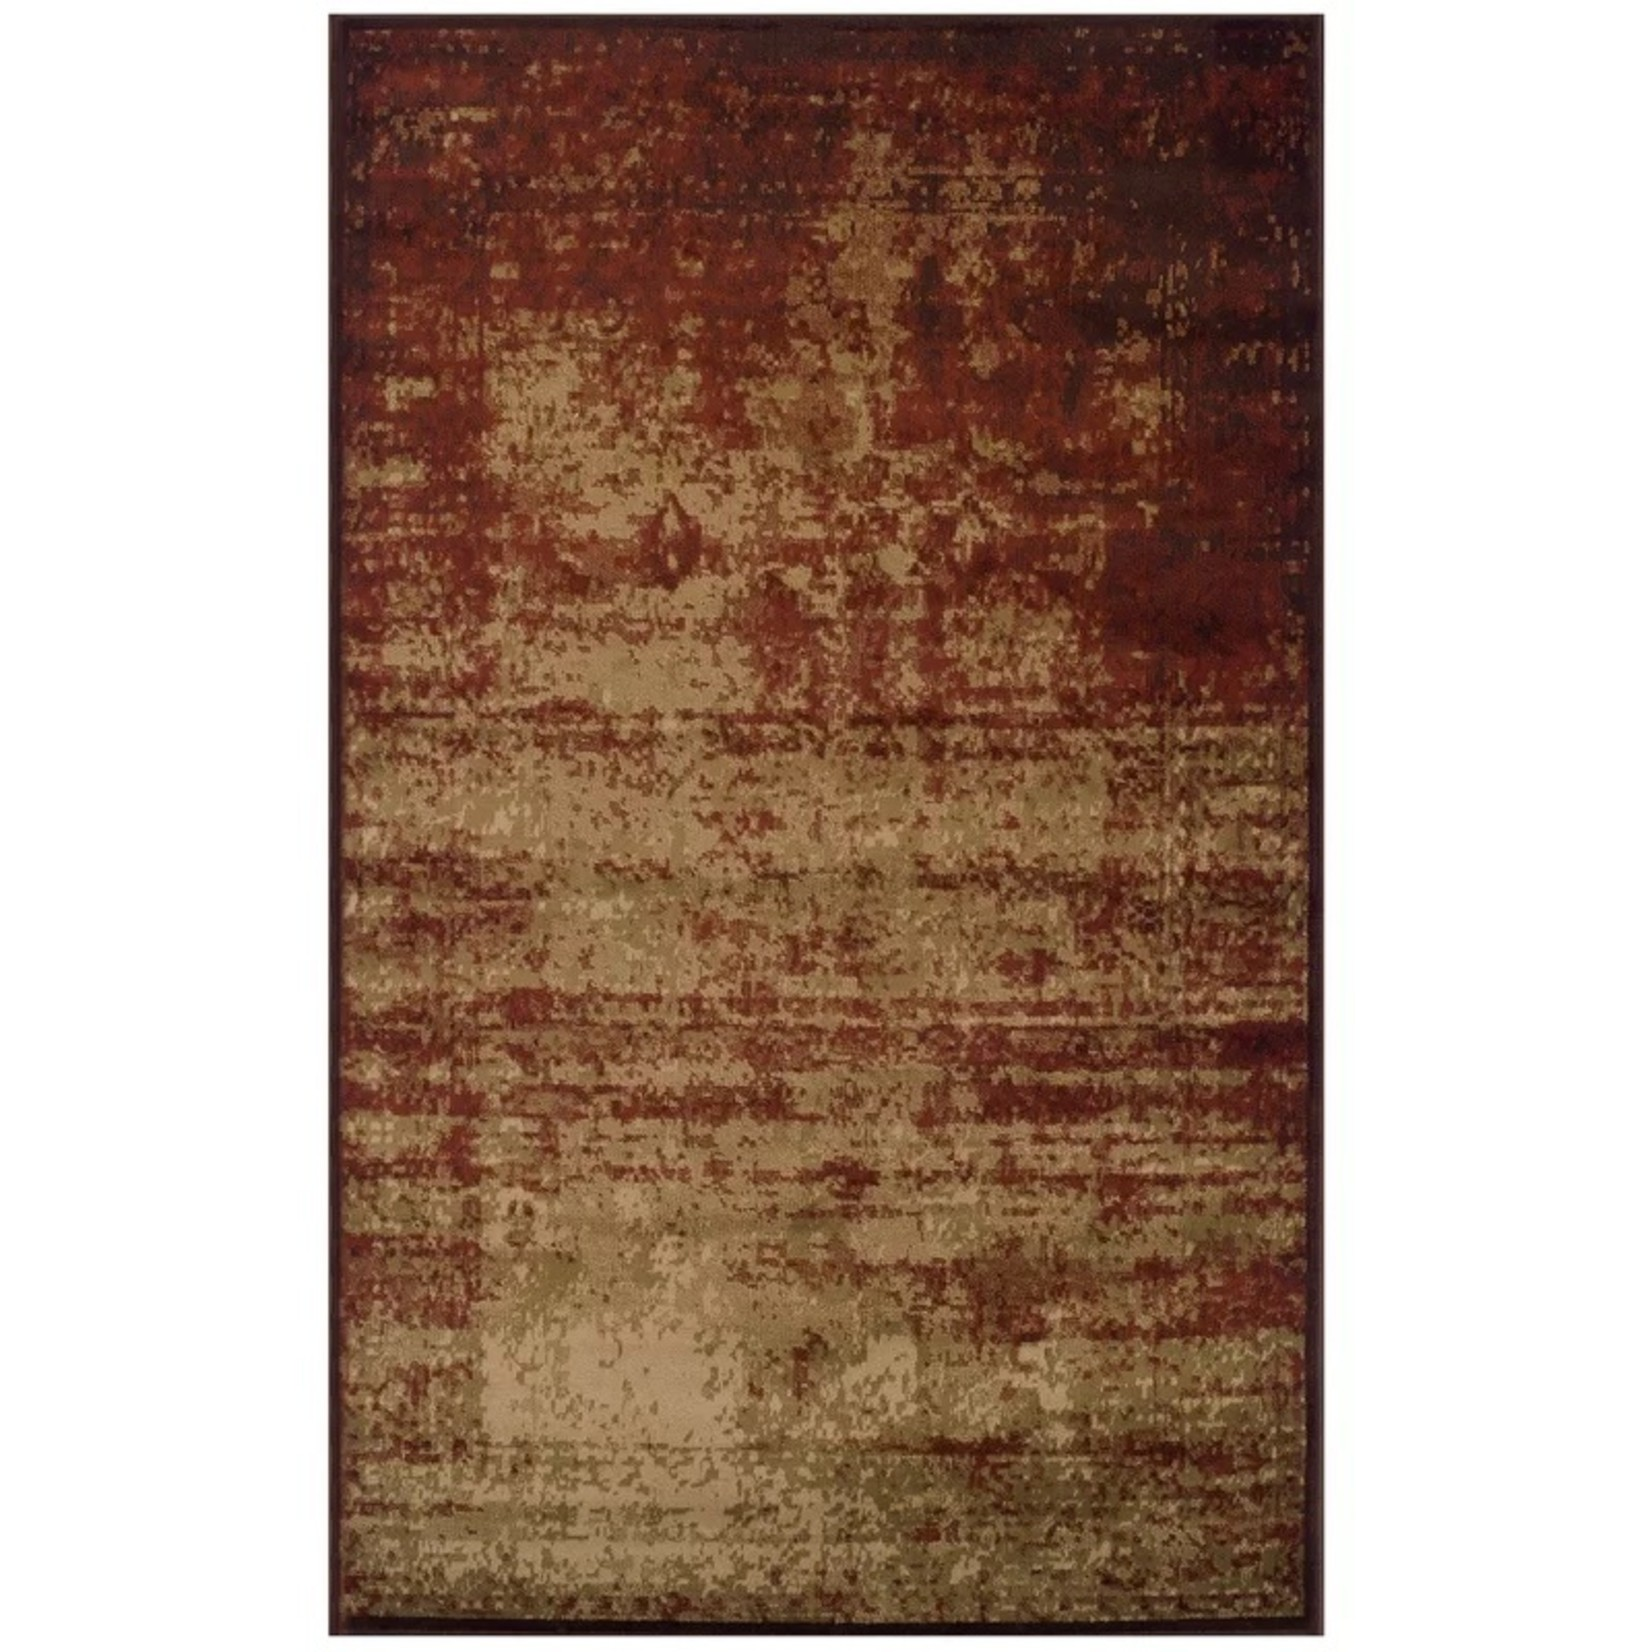 *8' x 10' - Wyona Abstract Red/Grey Area Rug